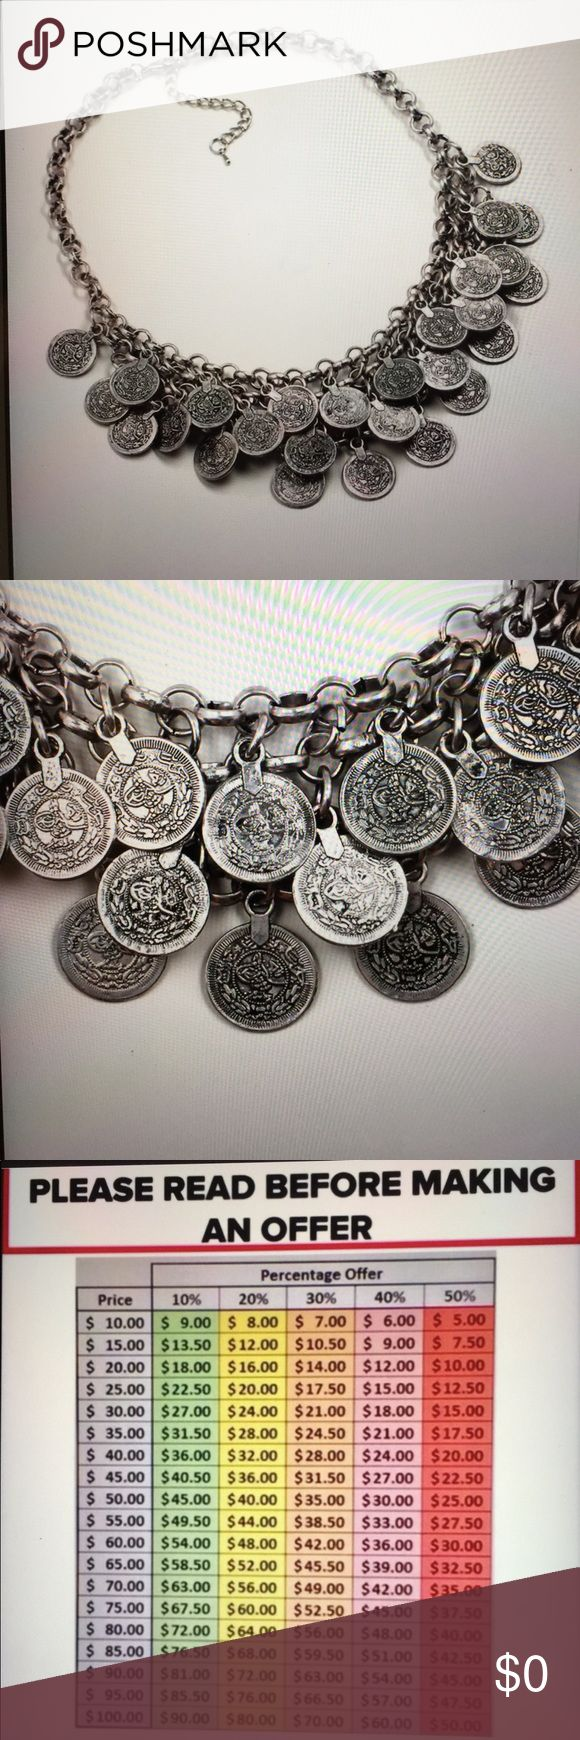 "Boho chic old vintage silver coins Coming Soon! Boho chic Coin all vintage silver pendant necklace hot fashion. Measurements are approximately 17 1/8"" with 3 1/8"" extender chain. The coins lay 2"" to lowest point. 040520174512001 Jewelry Necklaces"